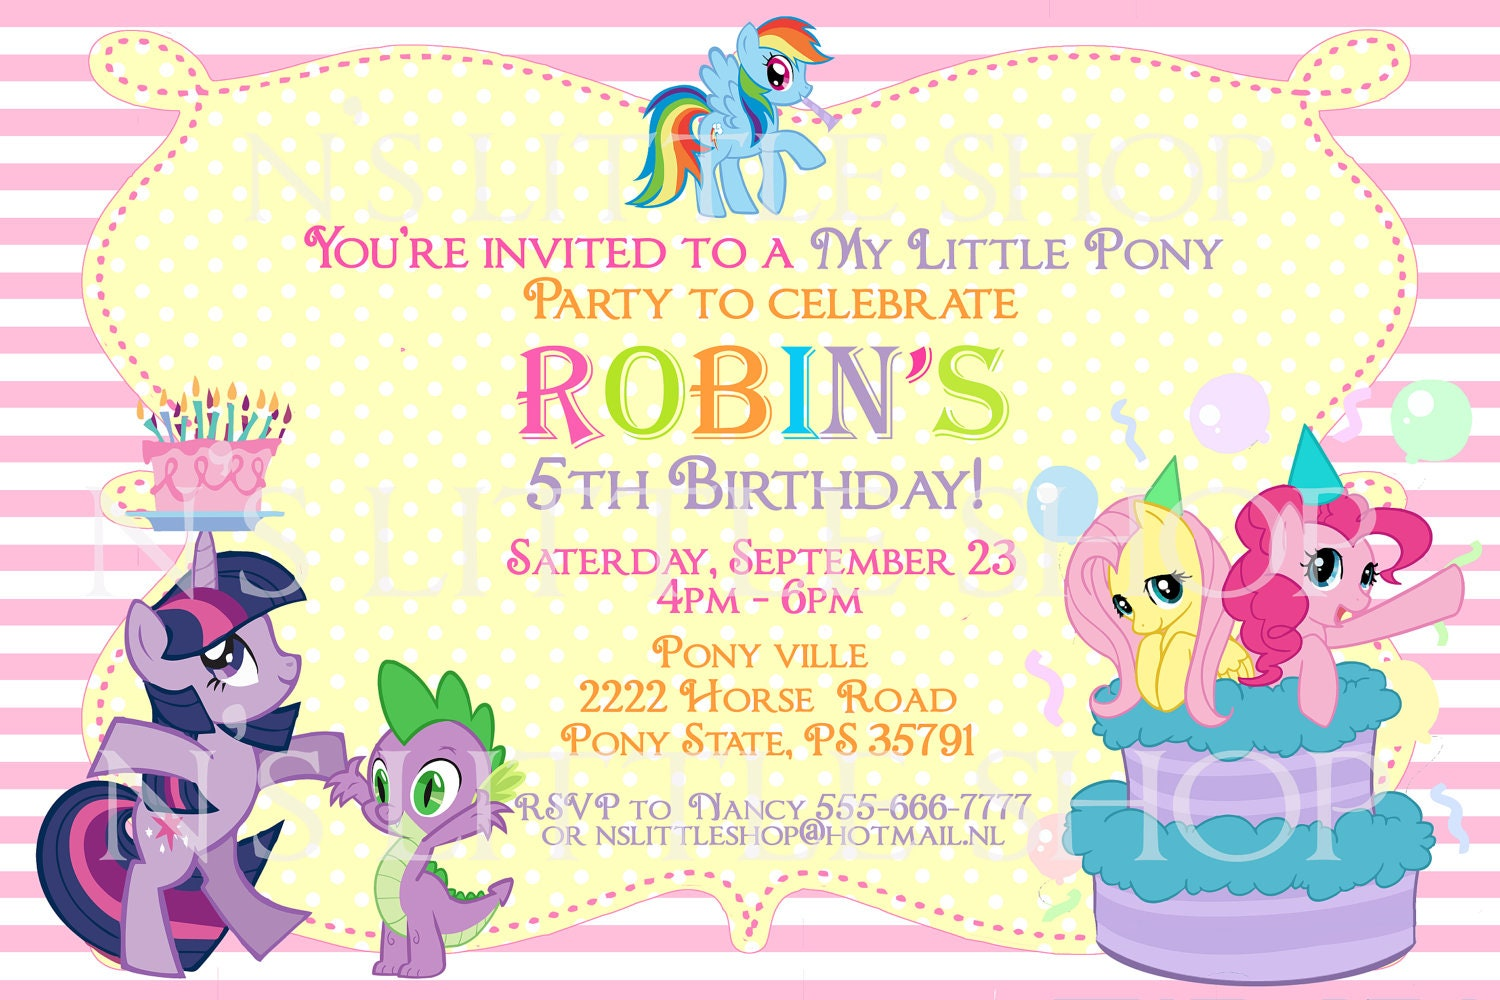 My Little Pony Birthday Party Invitation Ideas My little pony inspired